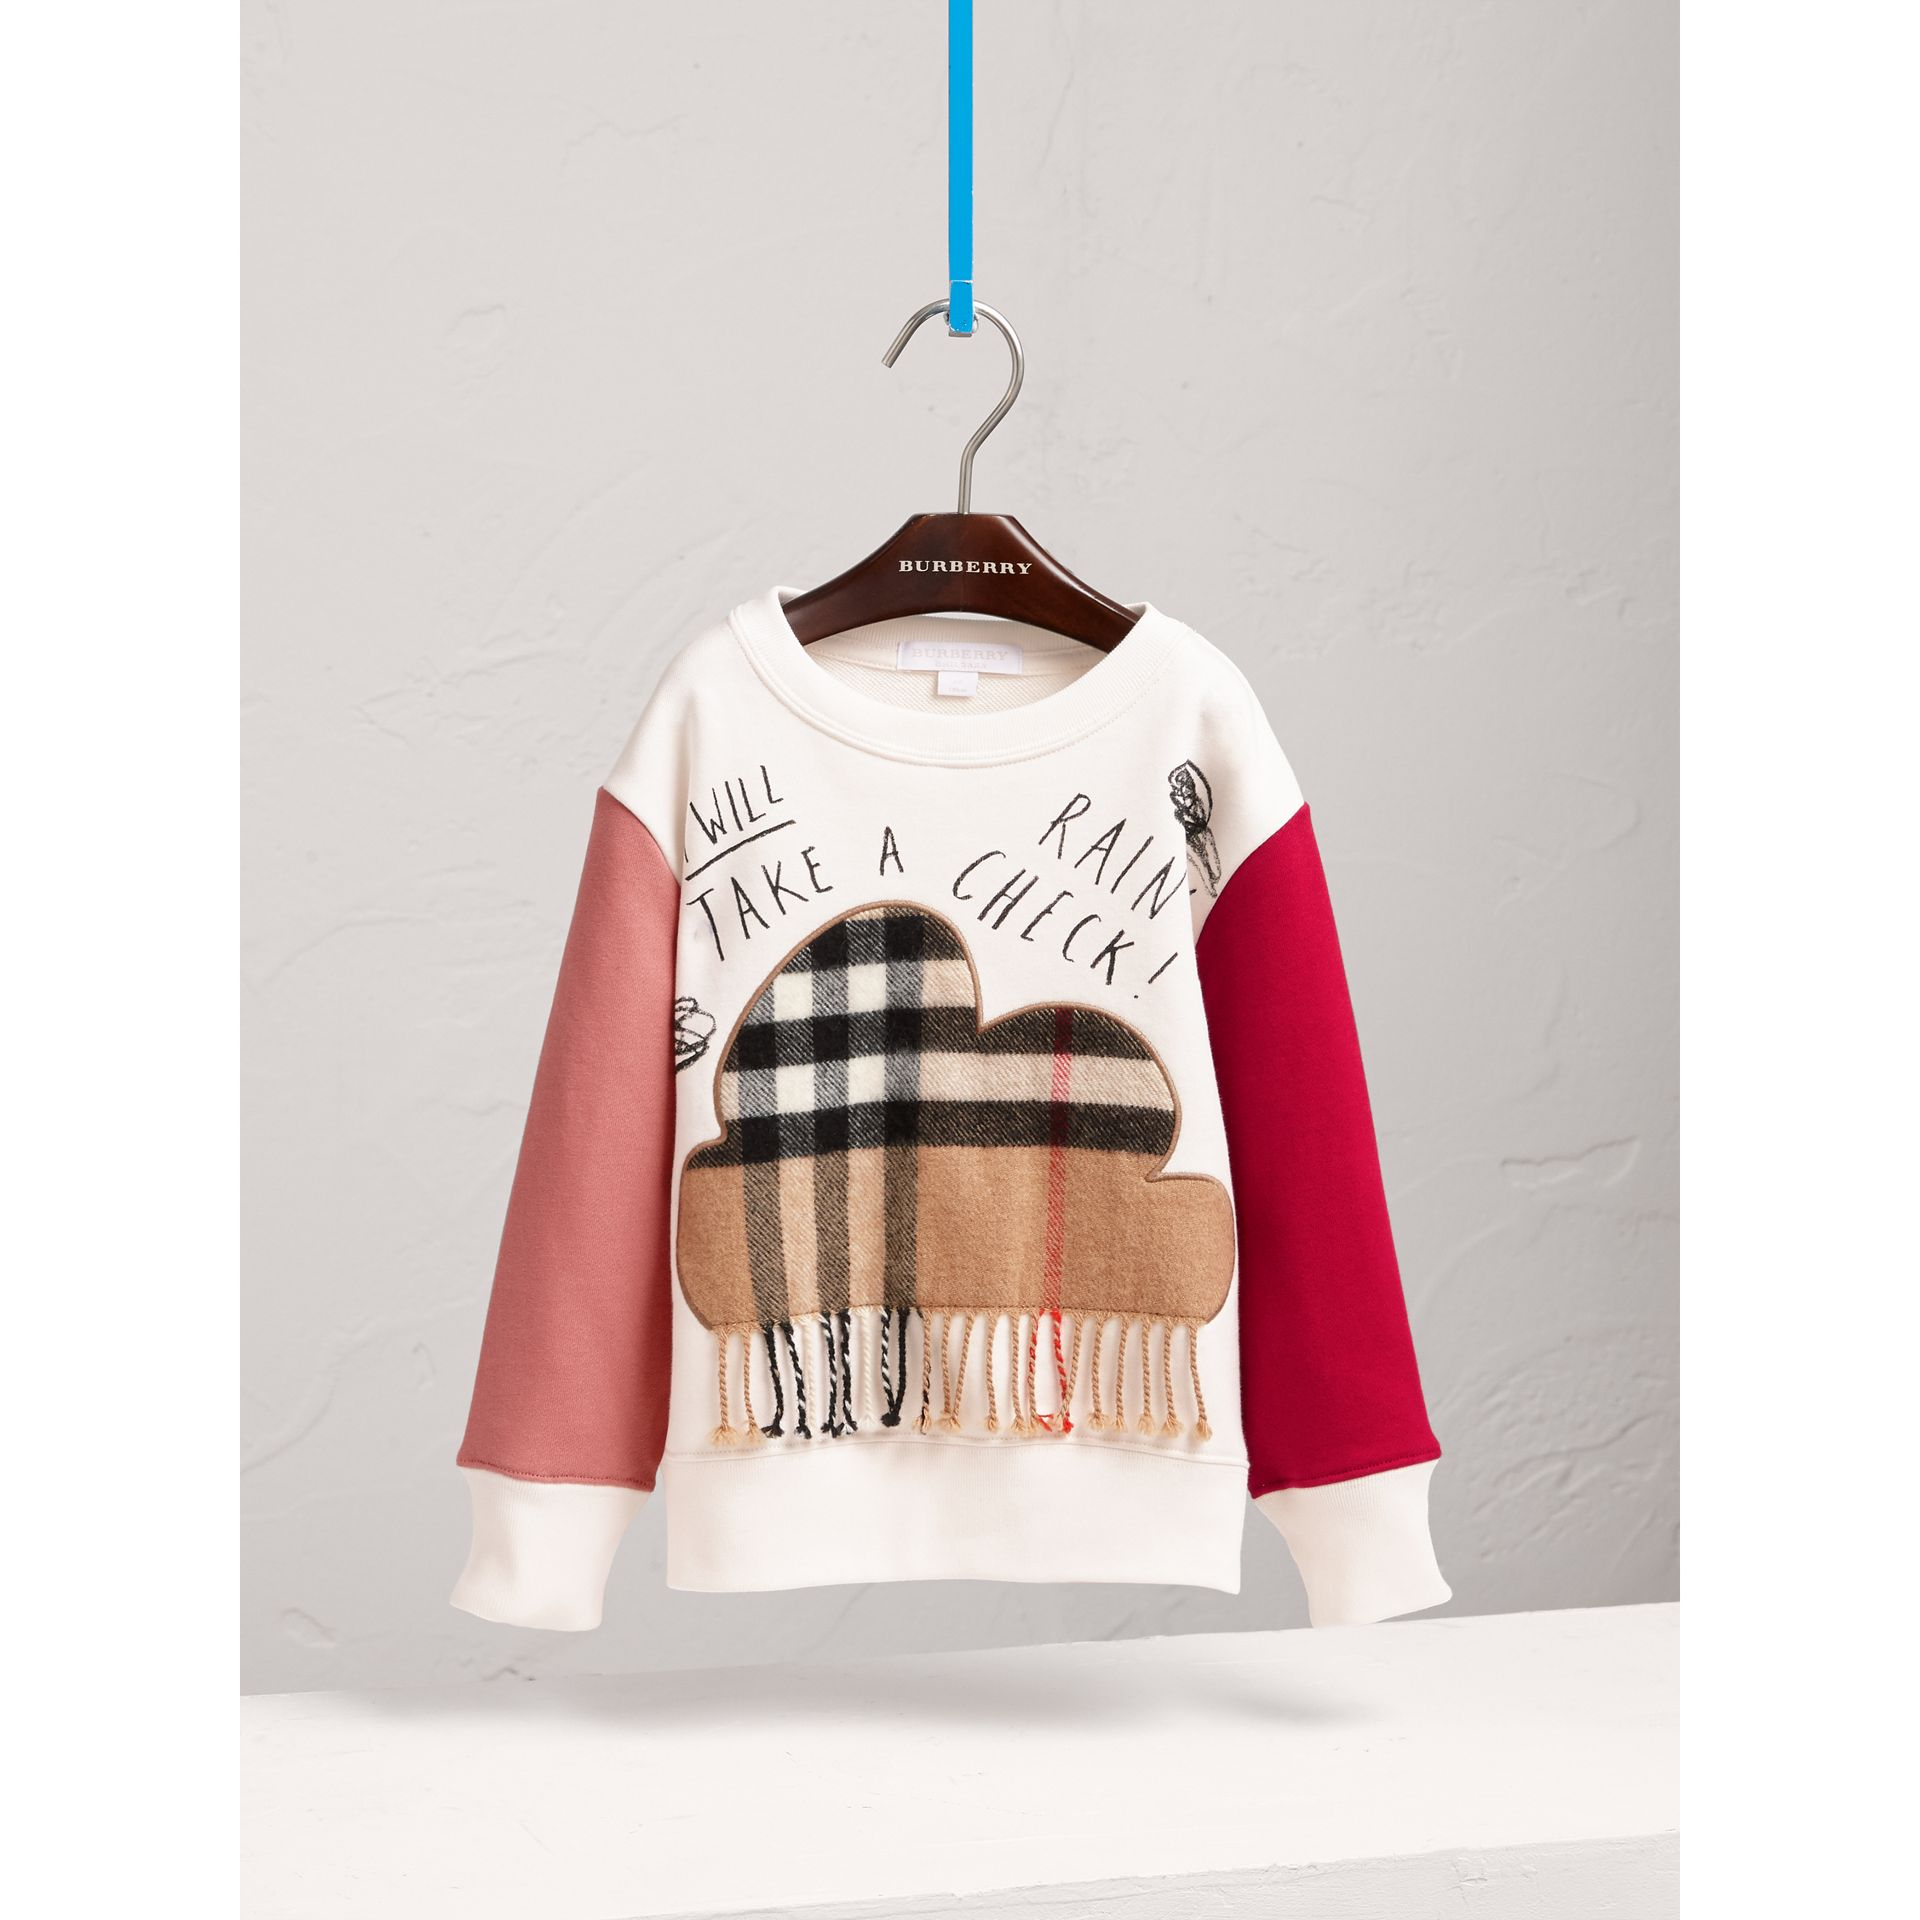 Weather Motif Cotton Sweatshirt in New Classic Check - Girl | Burberry United Kingdom - gallery image 3